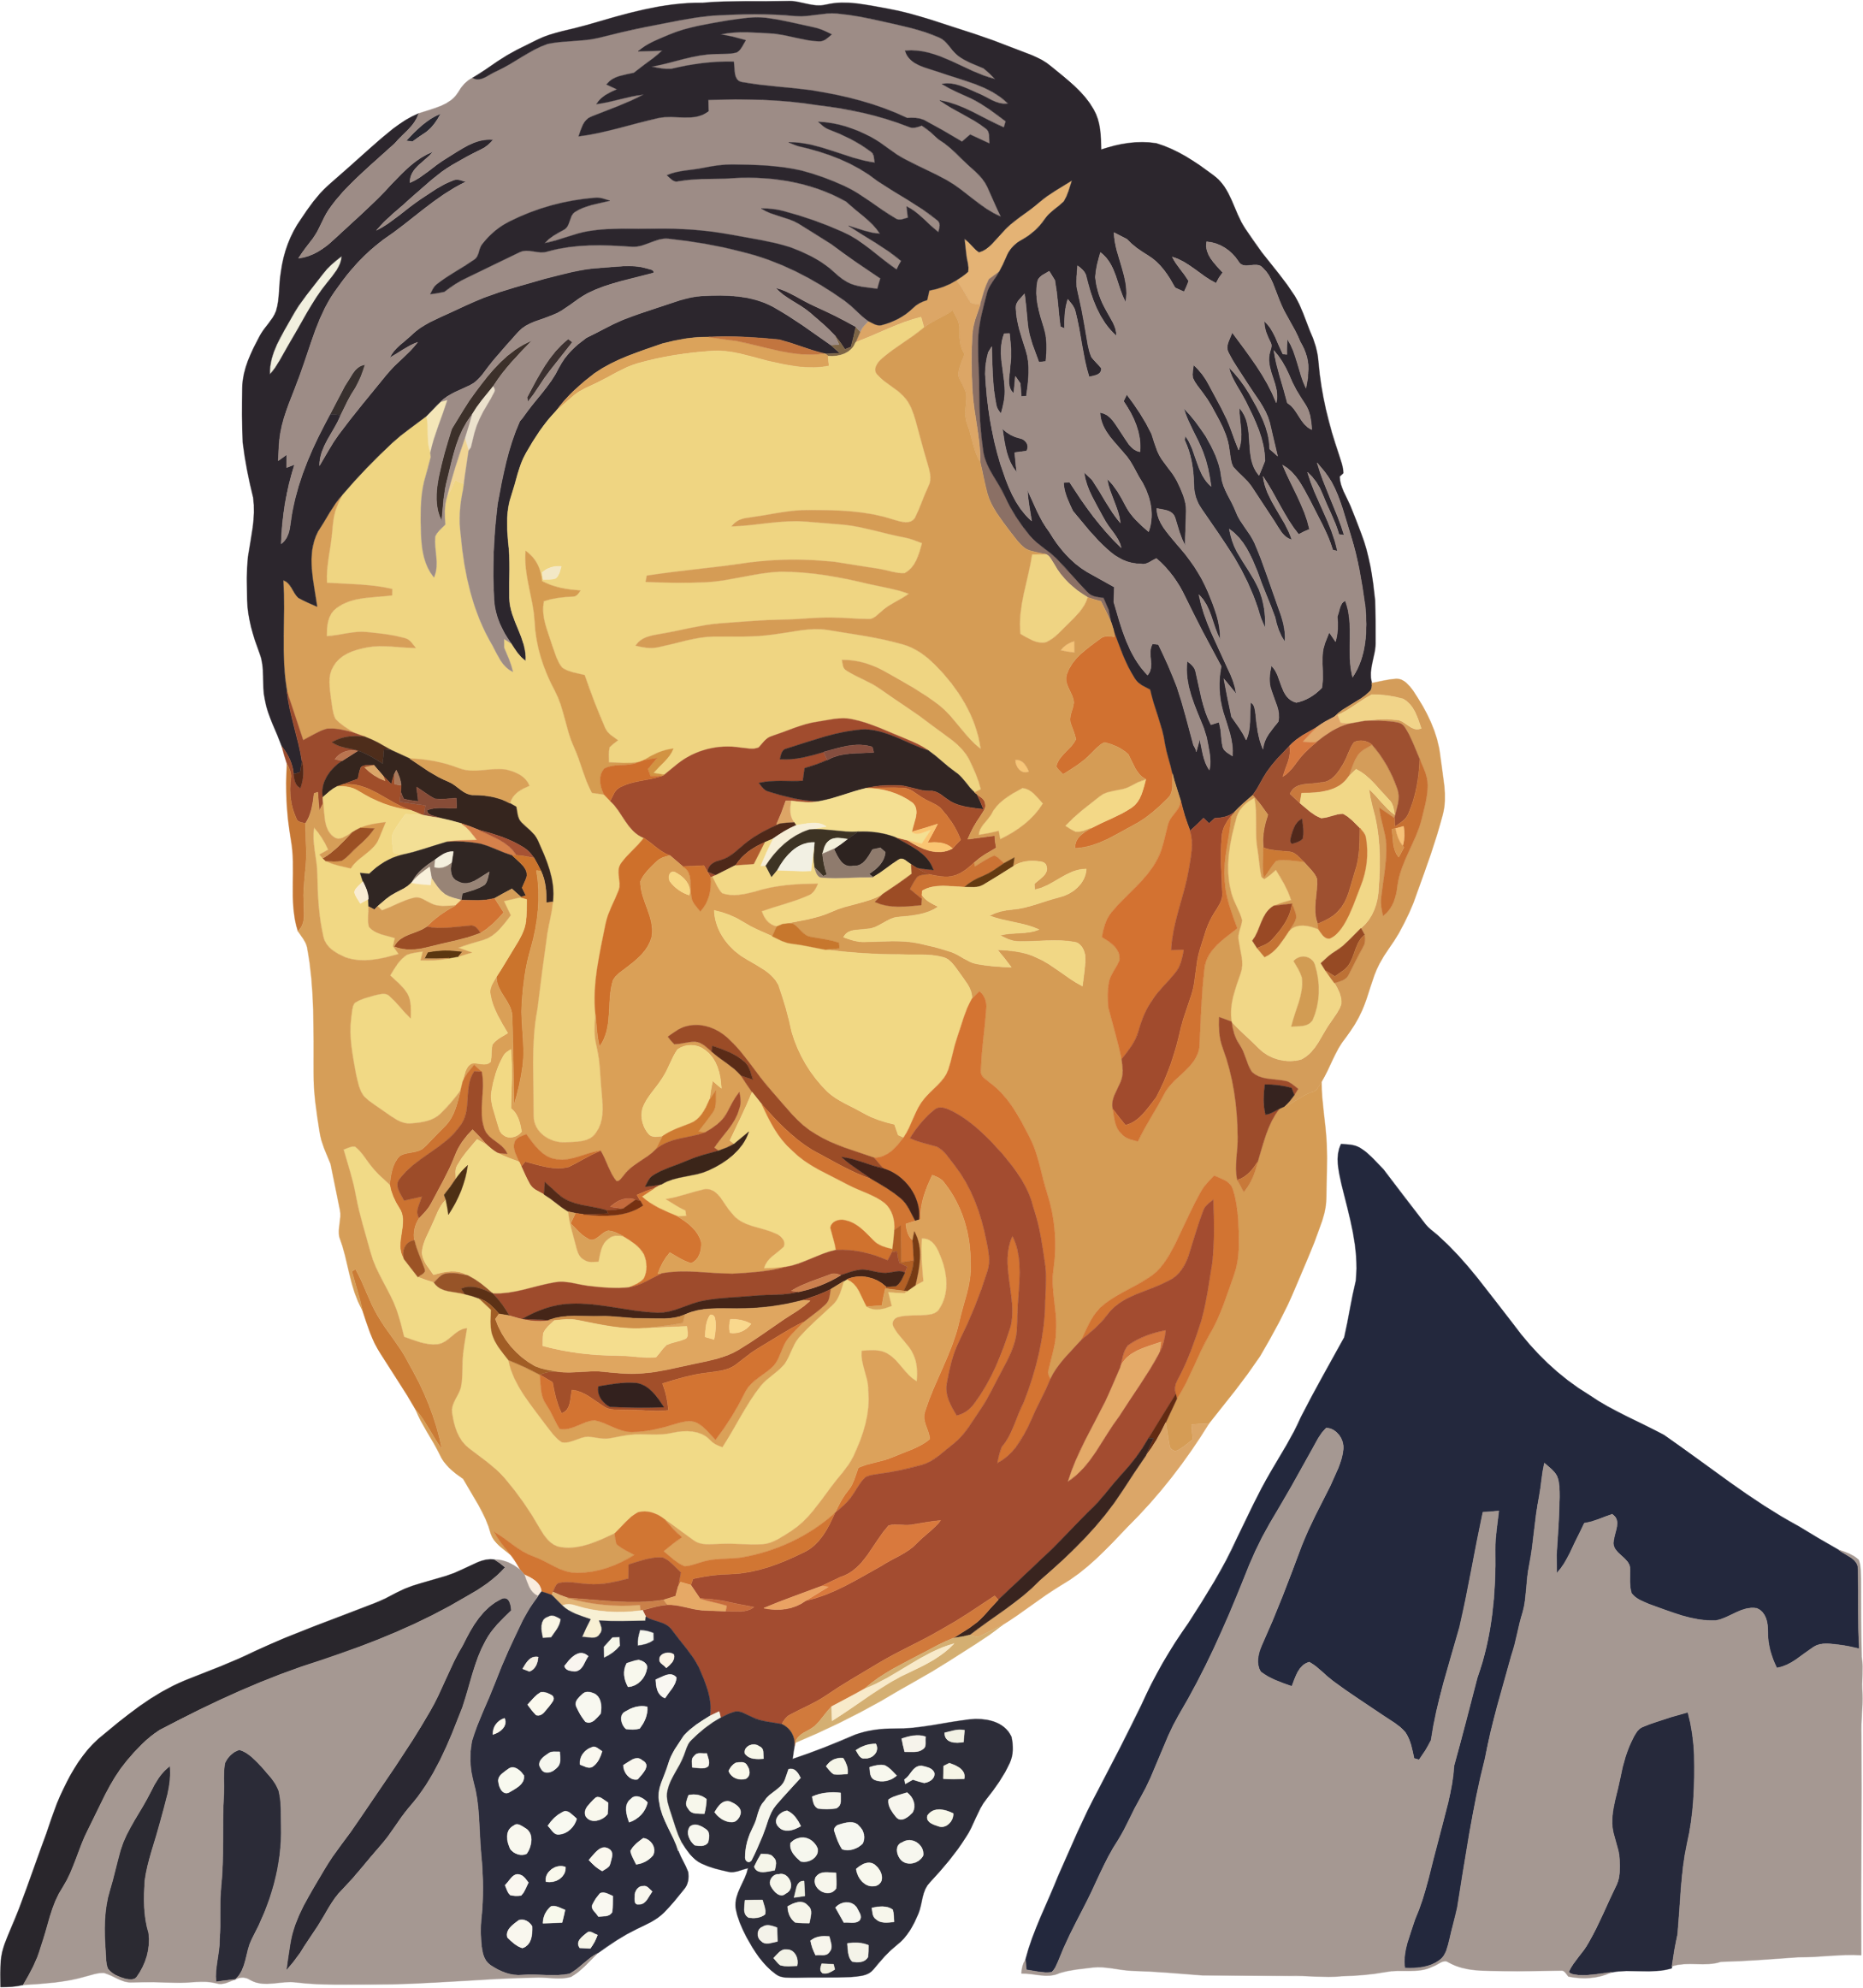 Photo clipart portrait. Vintage will rogers big